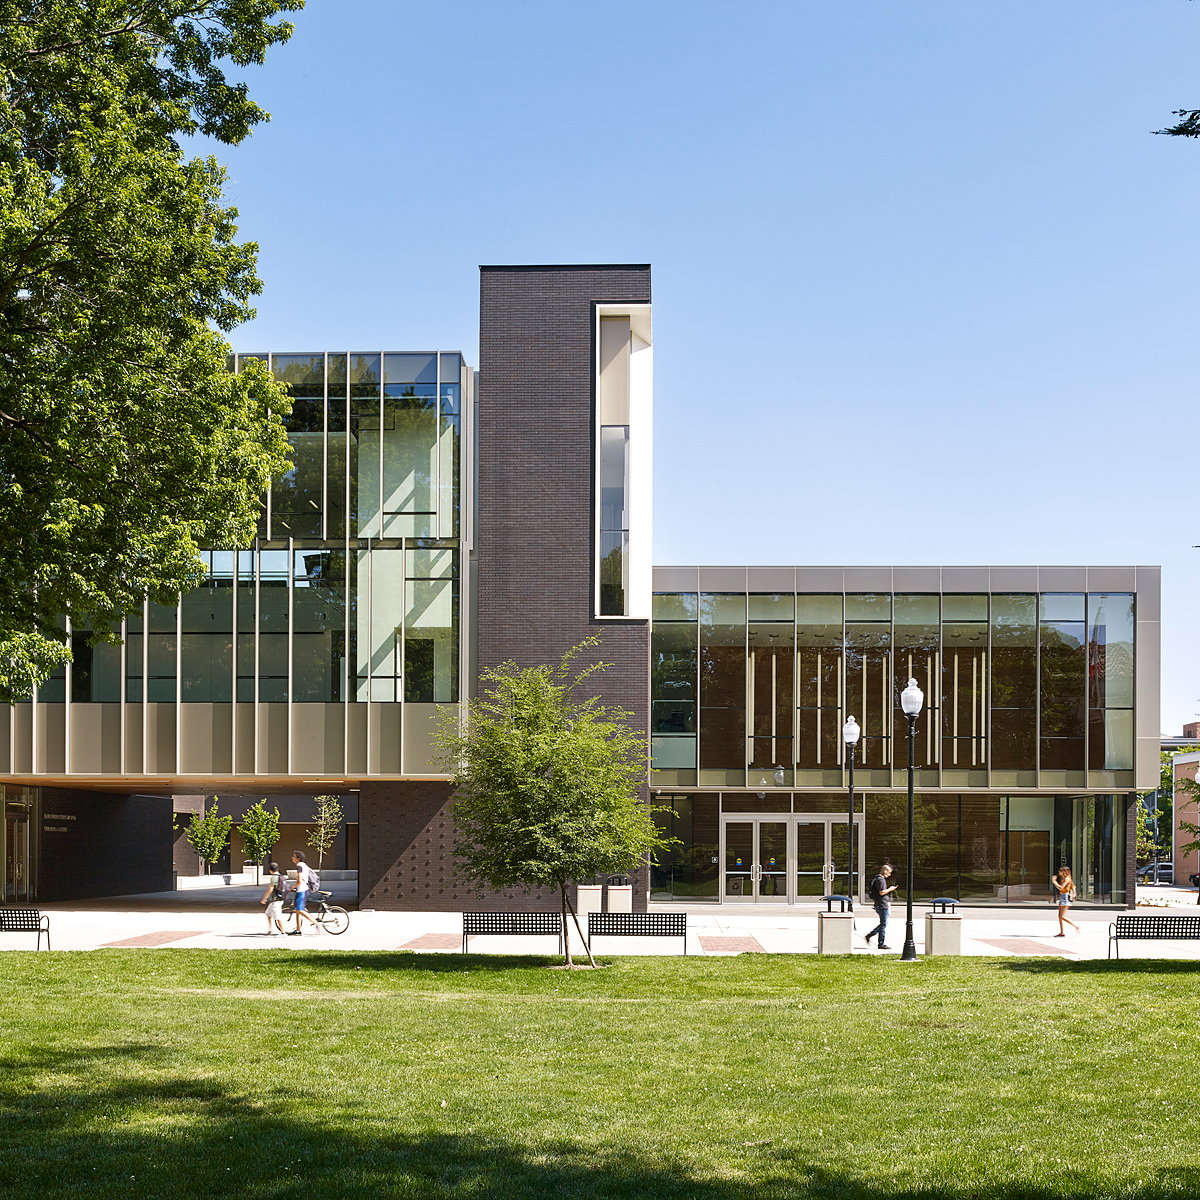 Chico State Arts and Humanities Building by WRNS Studio